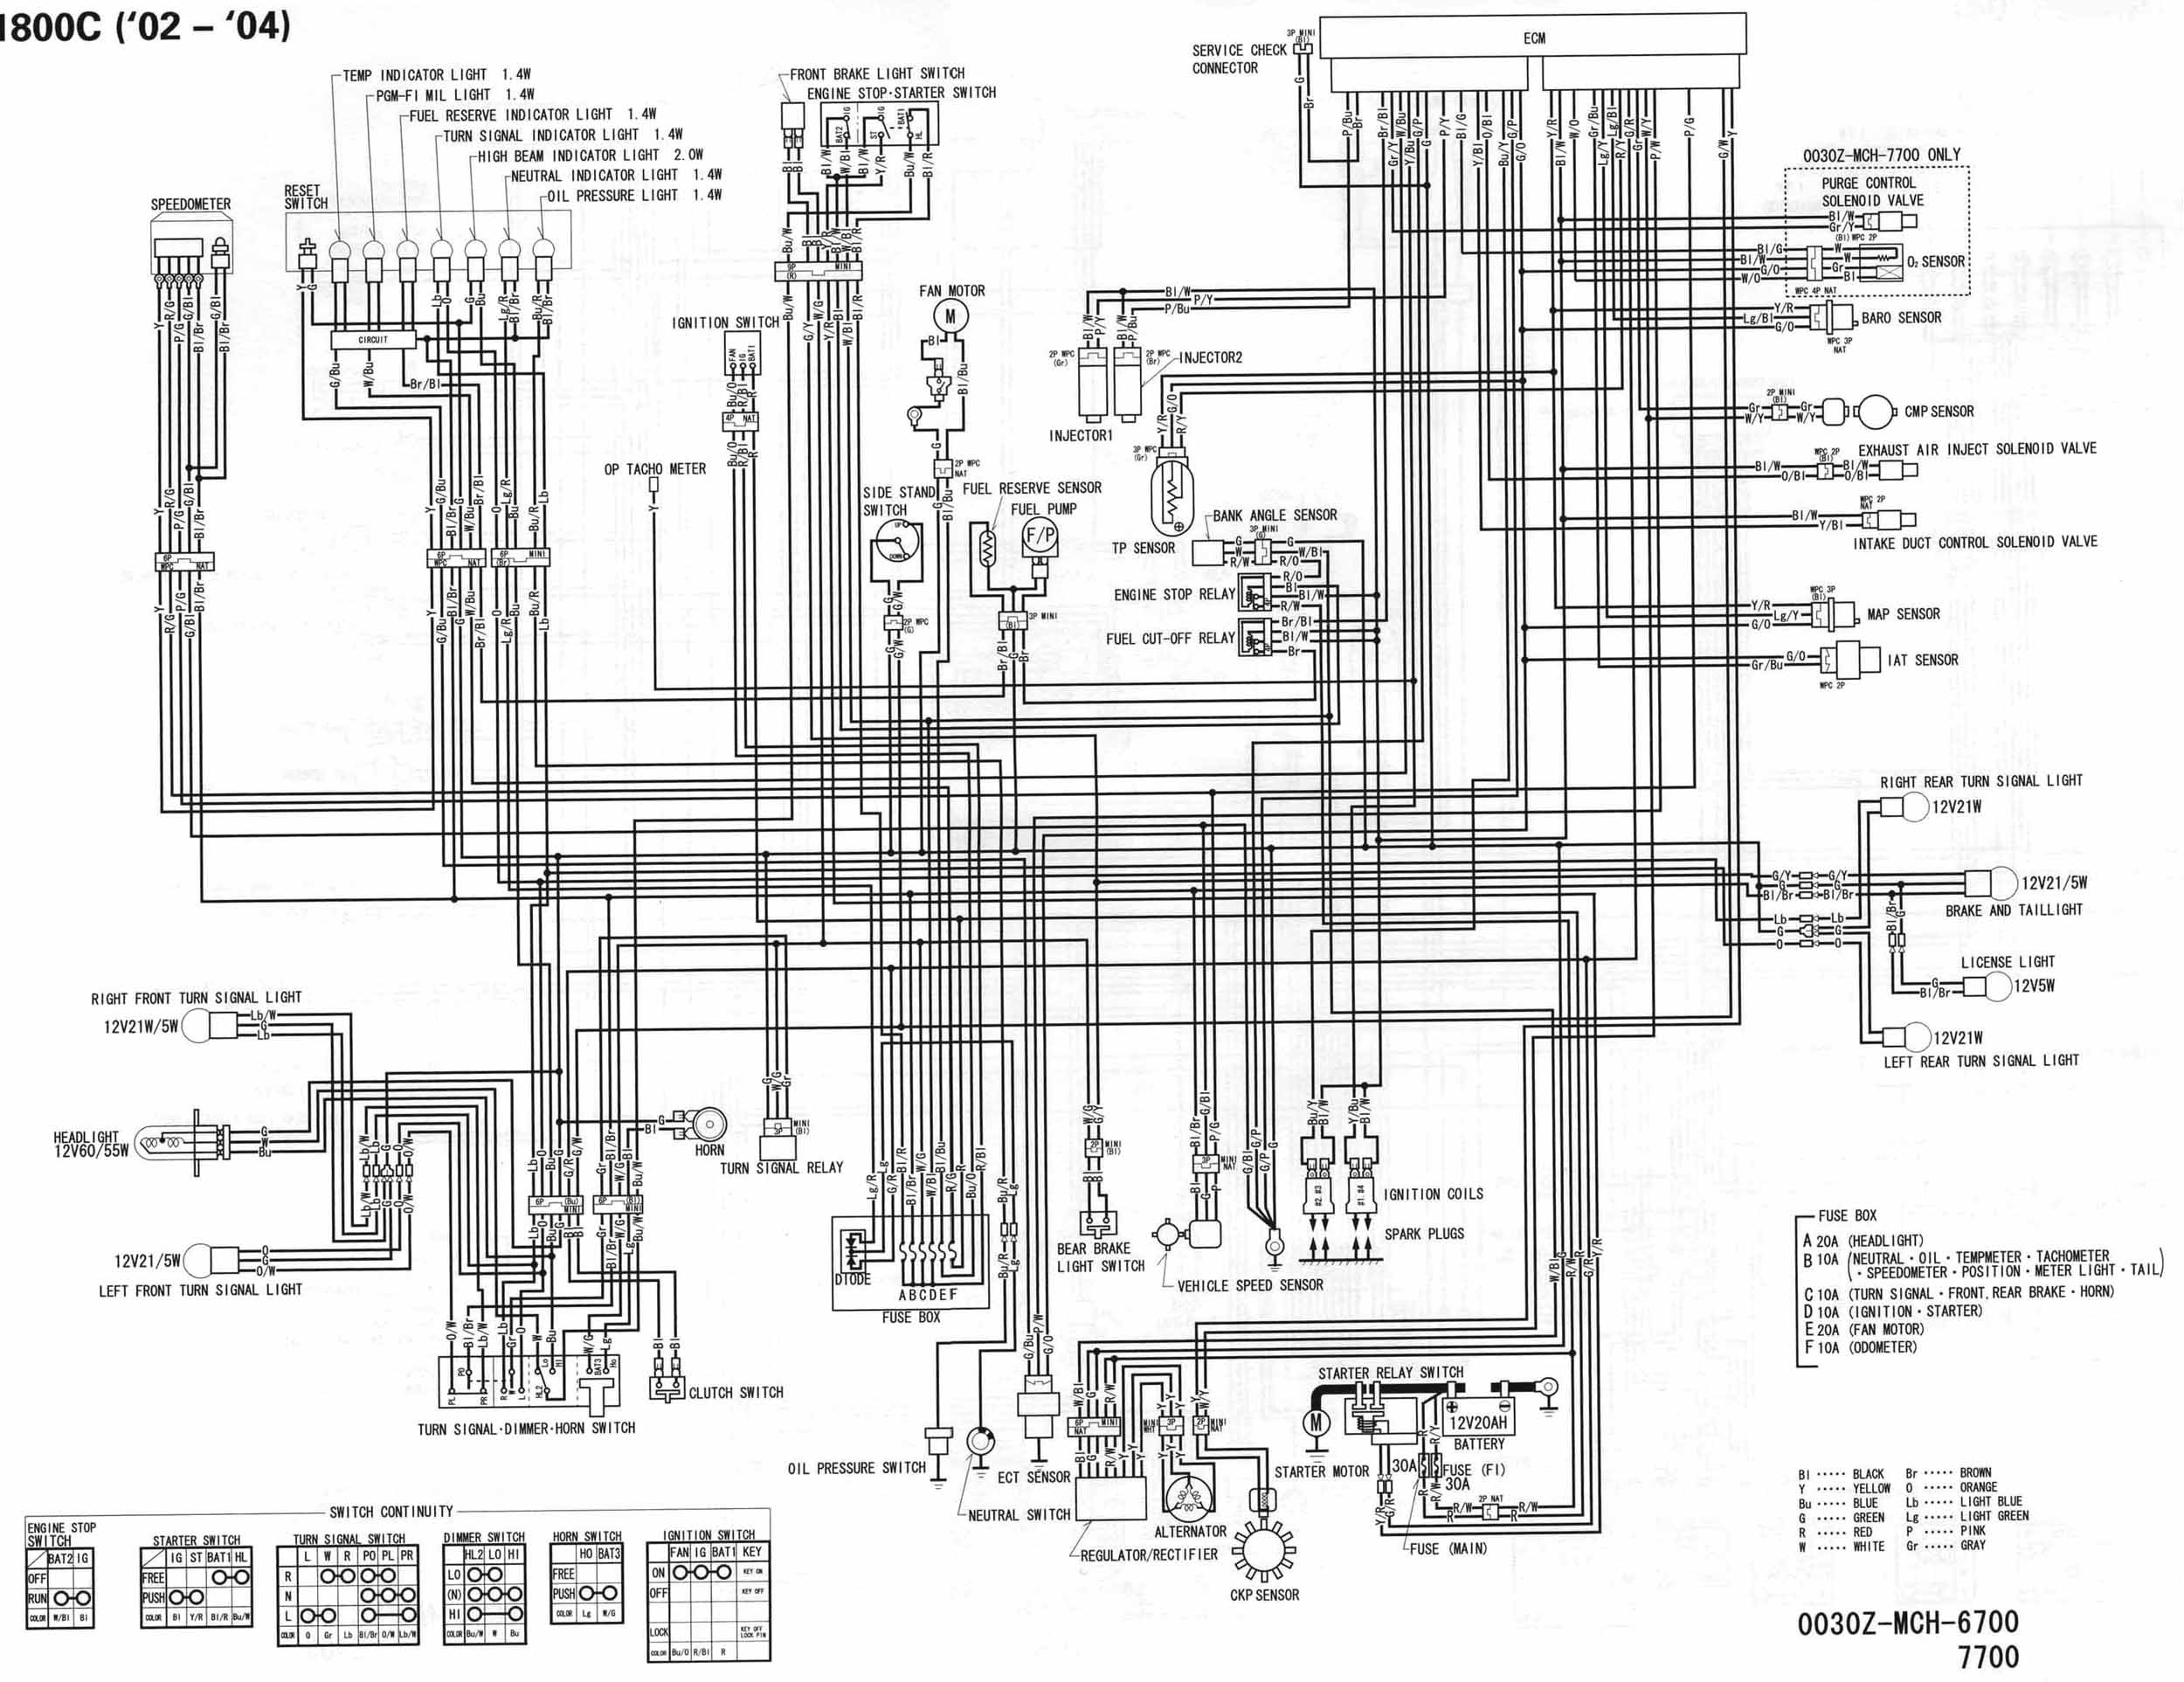 2003 honda vtx 1300 wiring diagram venn aptitude questions with solutions > circuits boss 400 speakers amp l54275 - next.gr